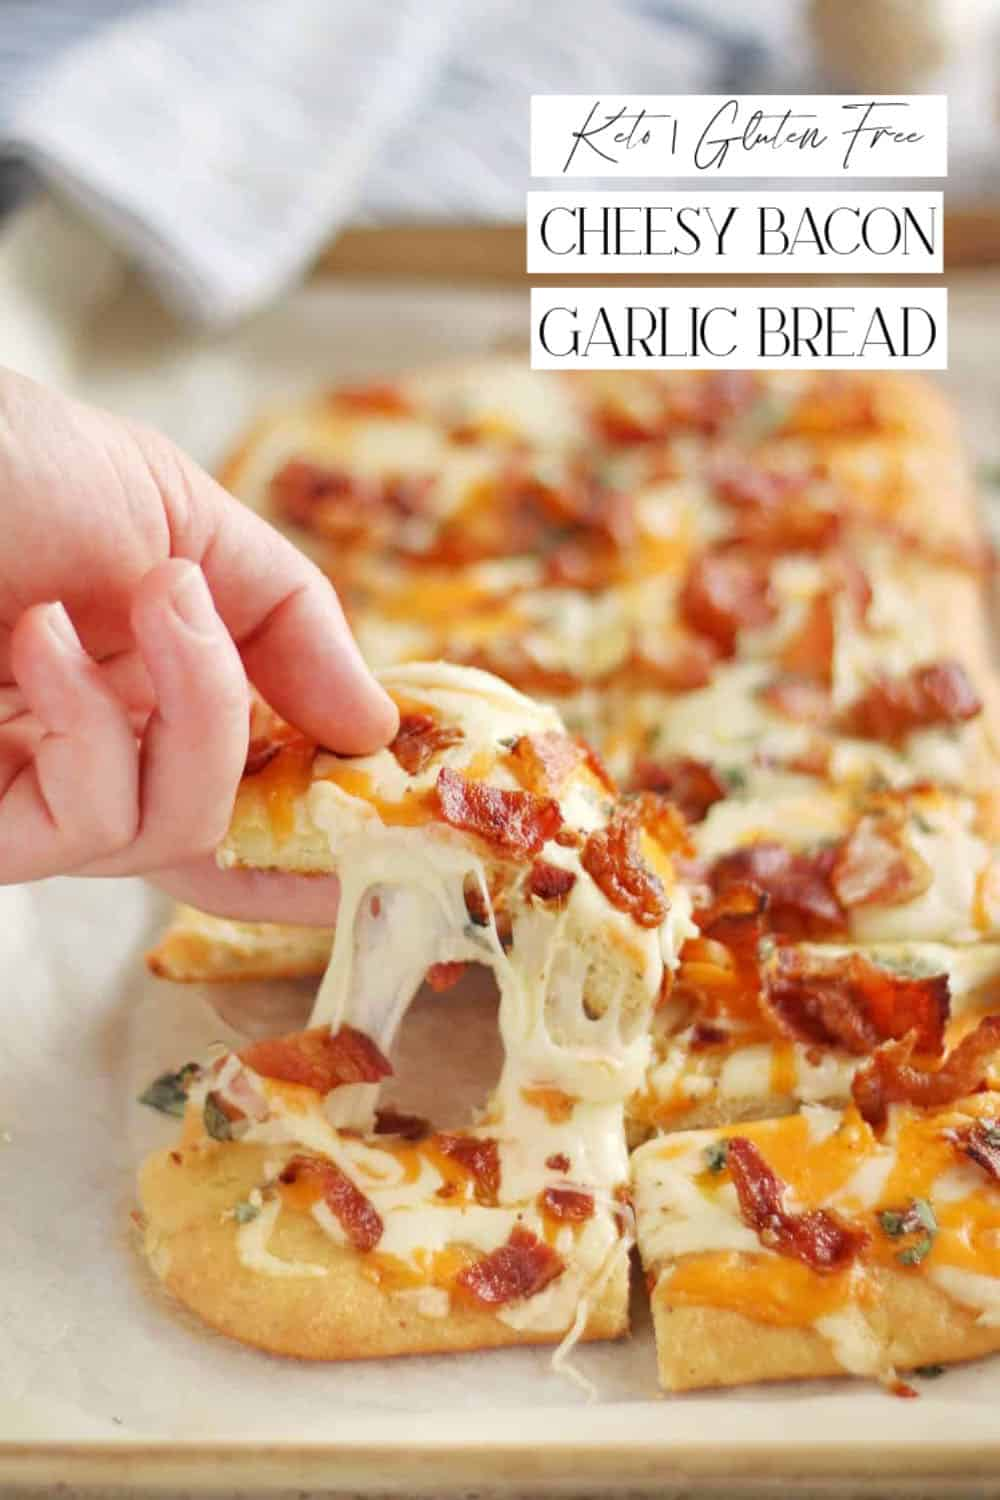 Keto Cheesy Bacon Garlic Bread